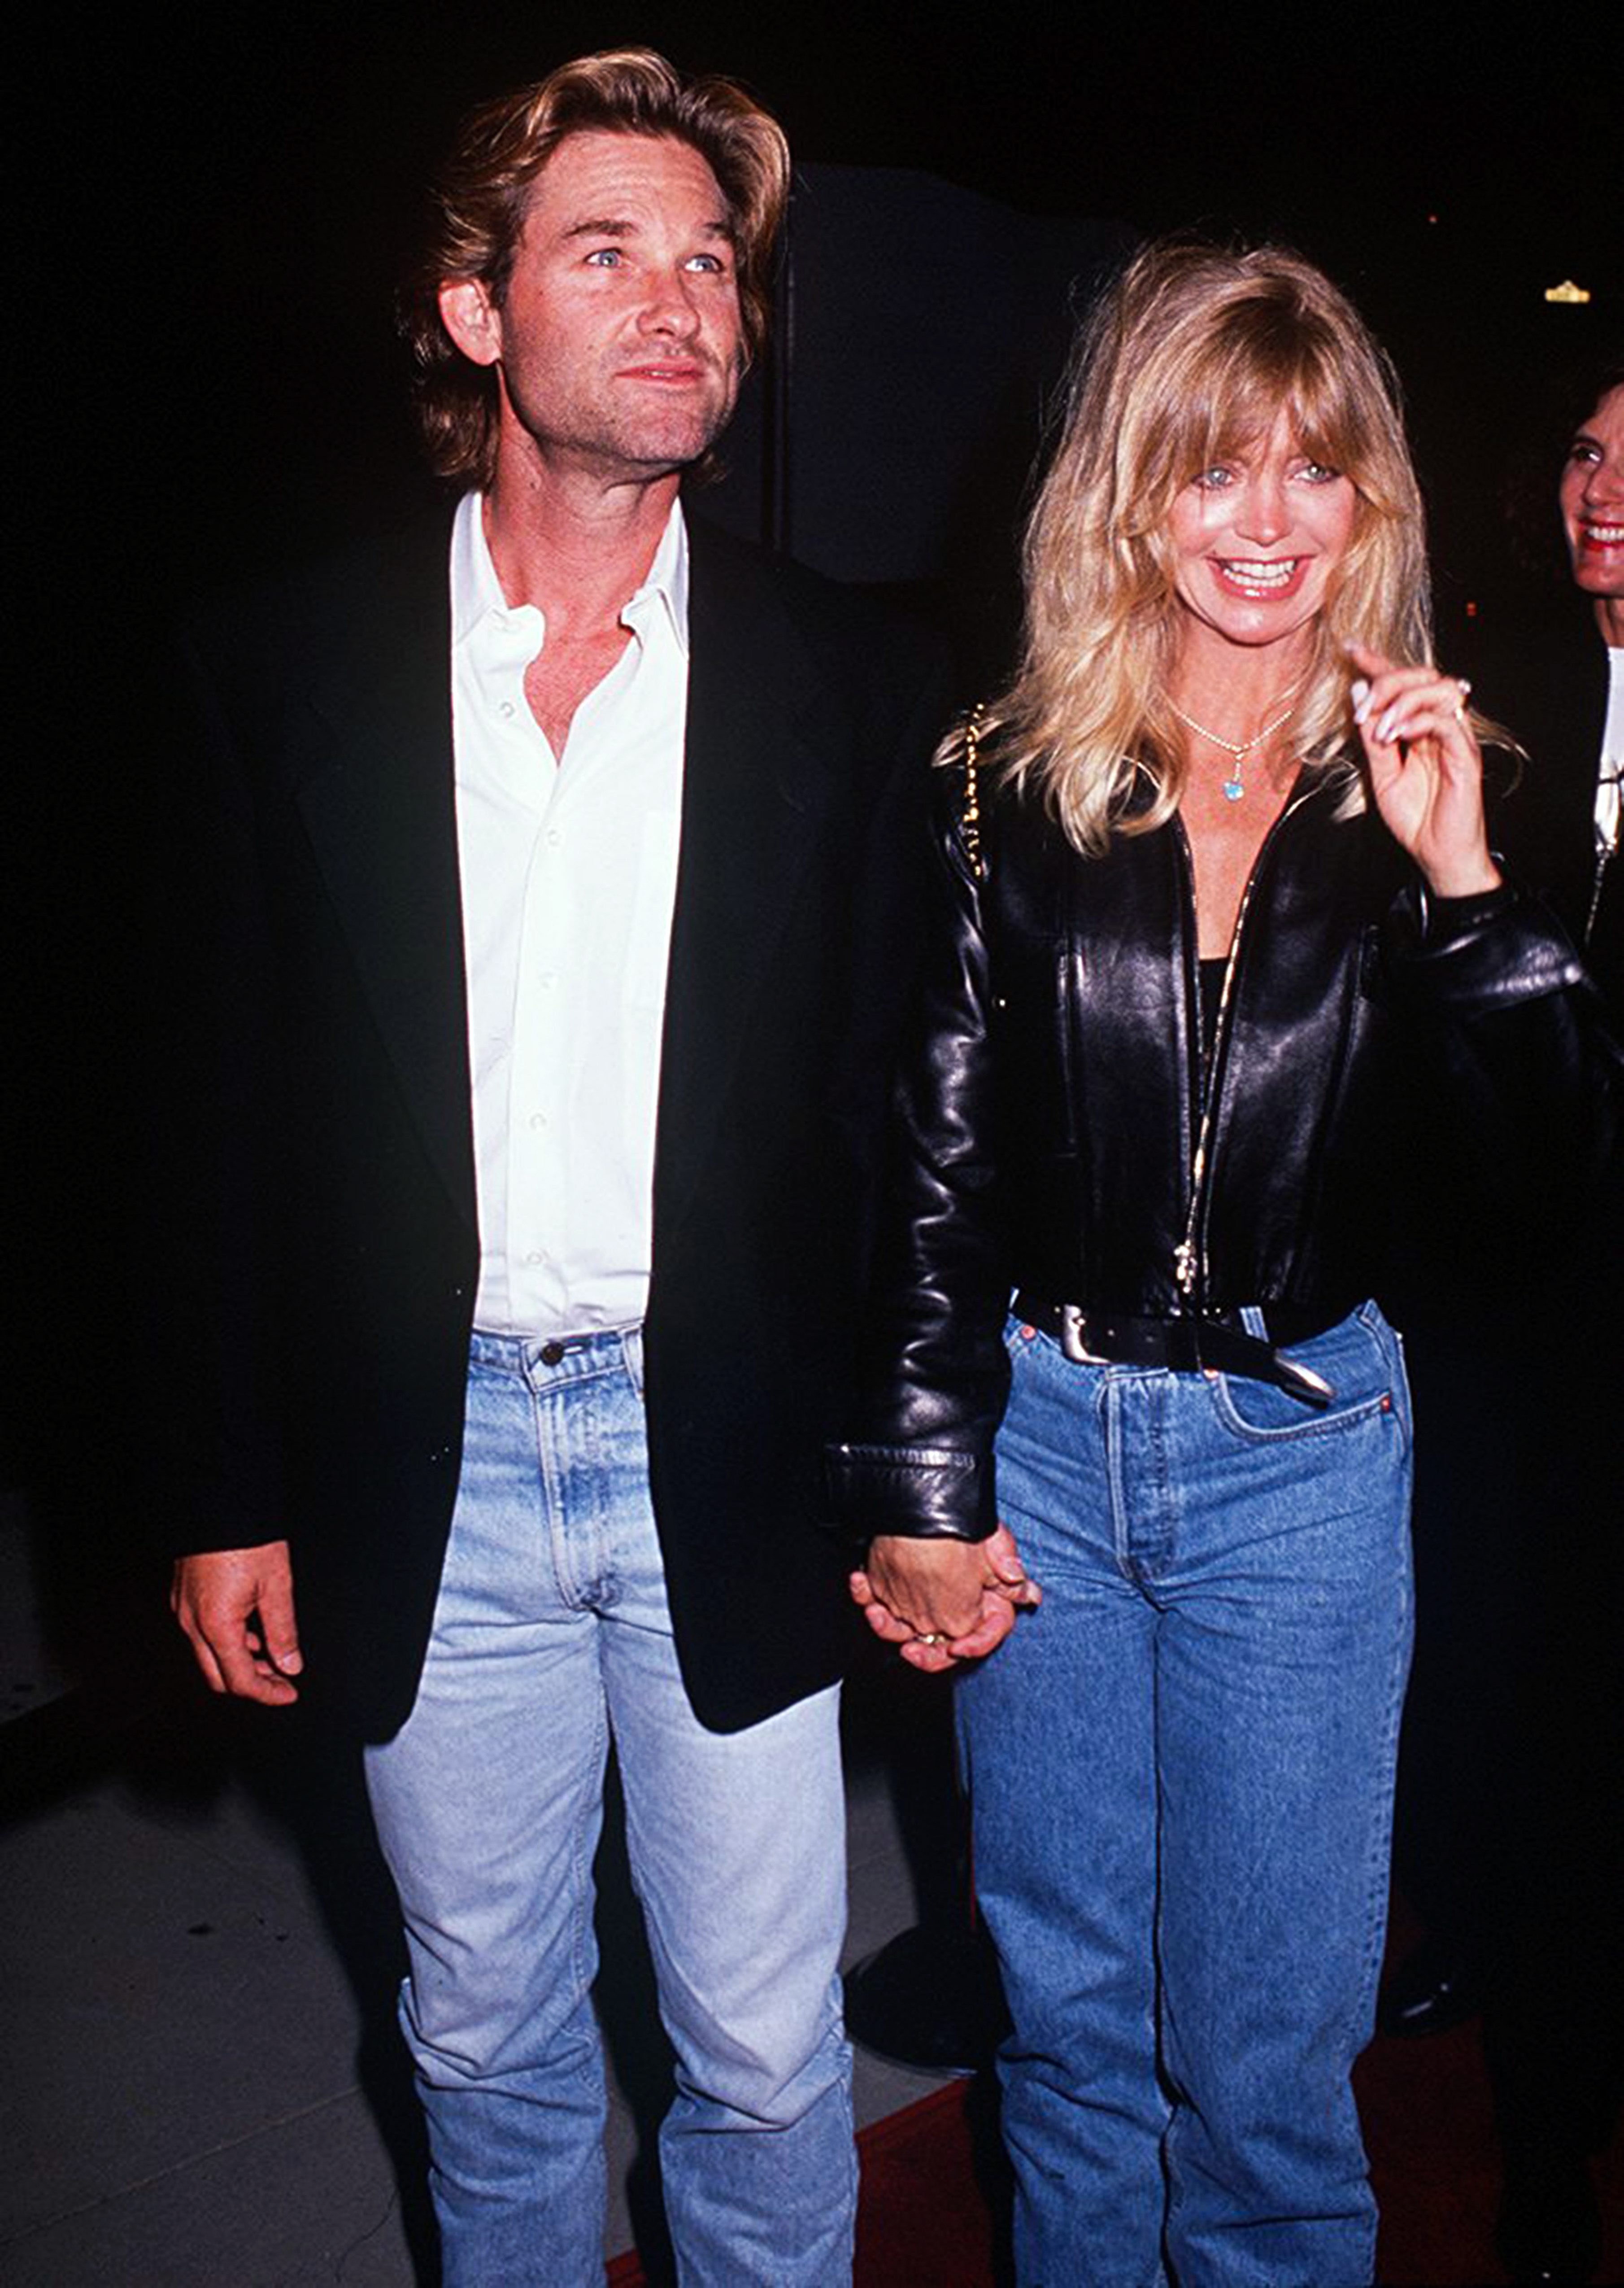 Goldie Hawn with her partner, actor Kurt Russell at the 'Housesitter' Beverly Hills premiere on June 9, 1992, at the Academy Theatre in Beverly Hills, California. | Source: Getty Images.